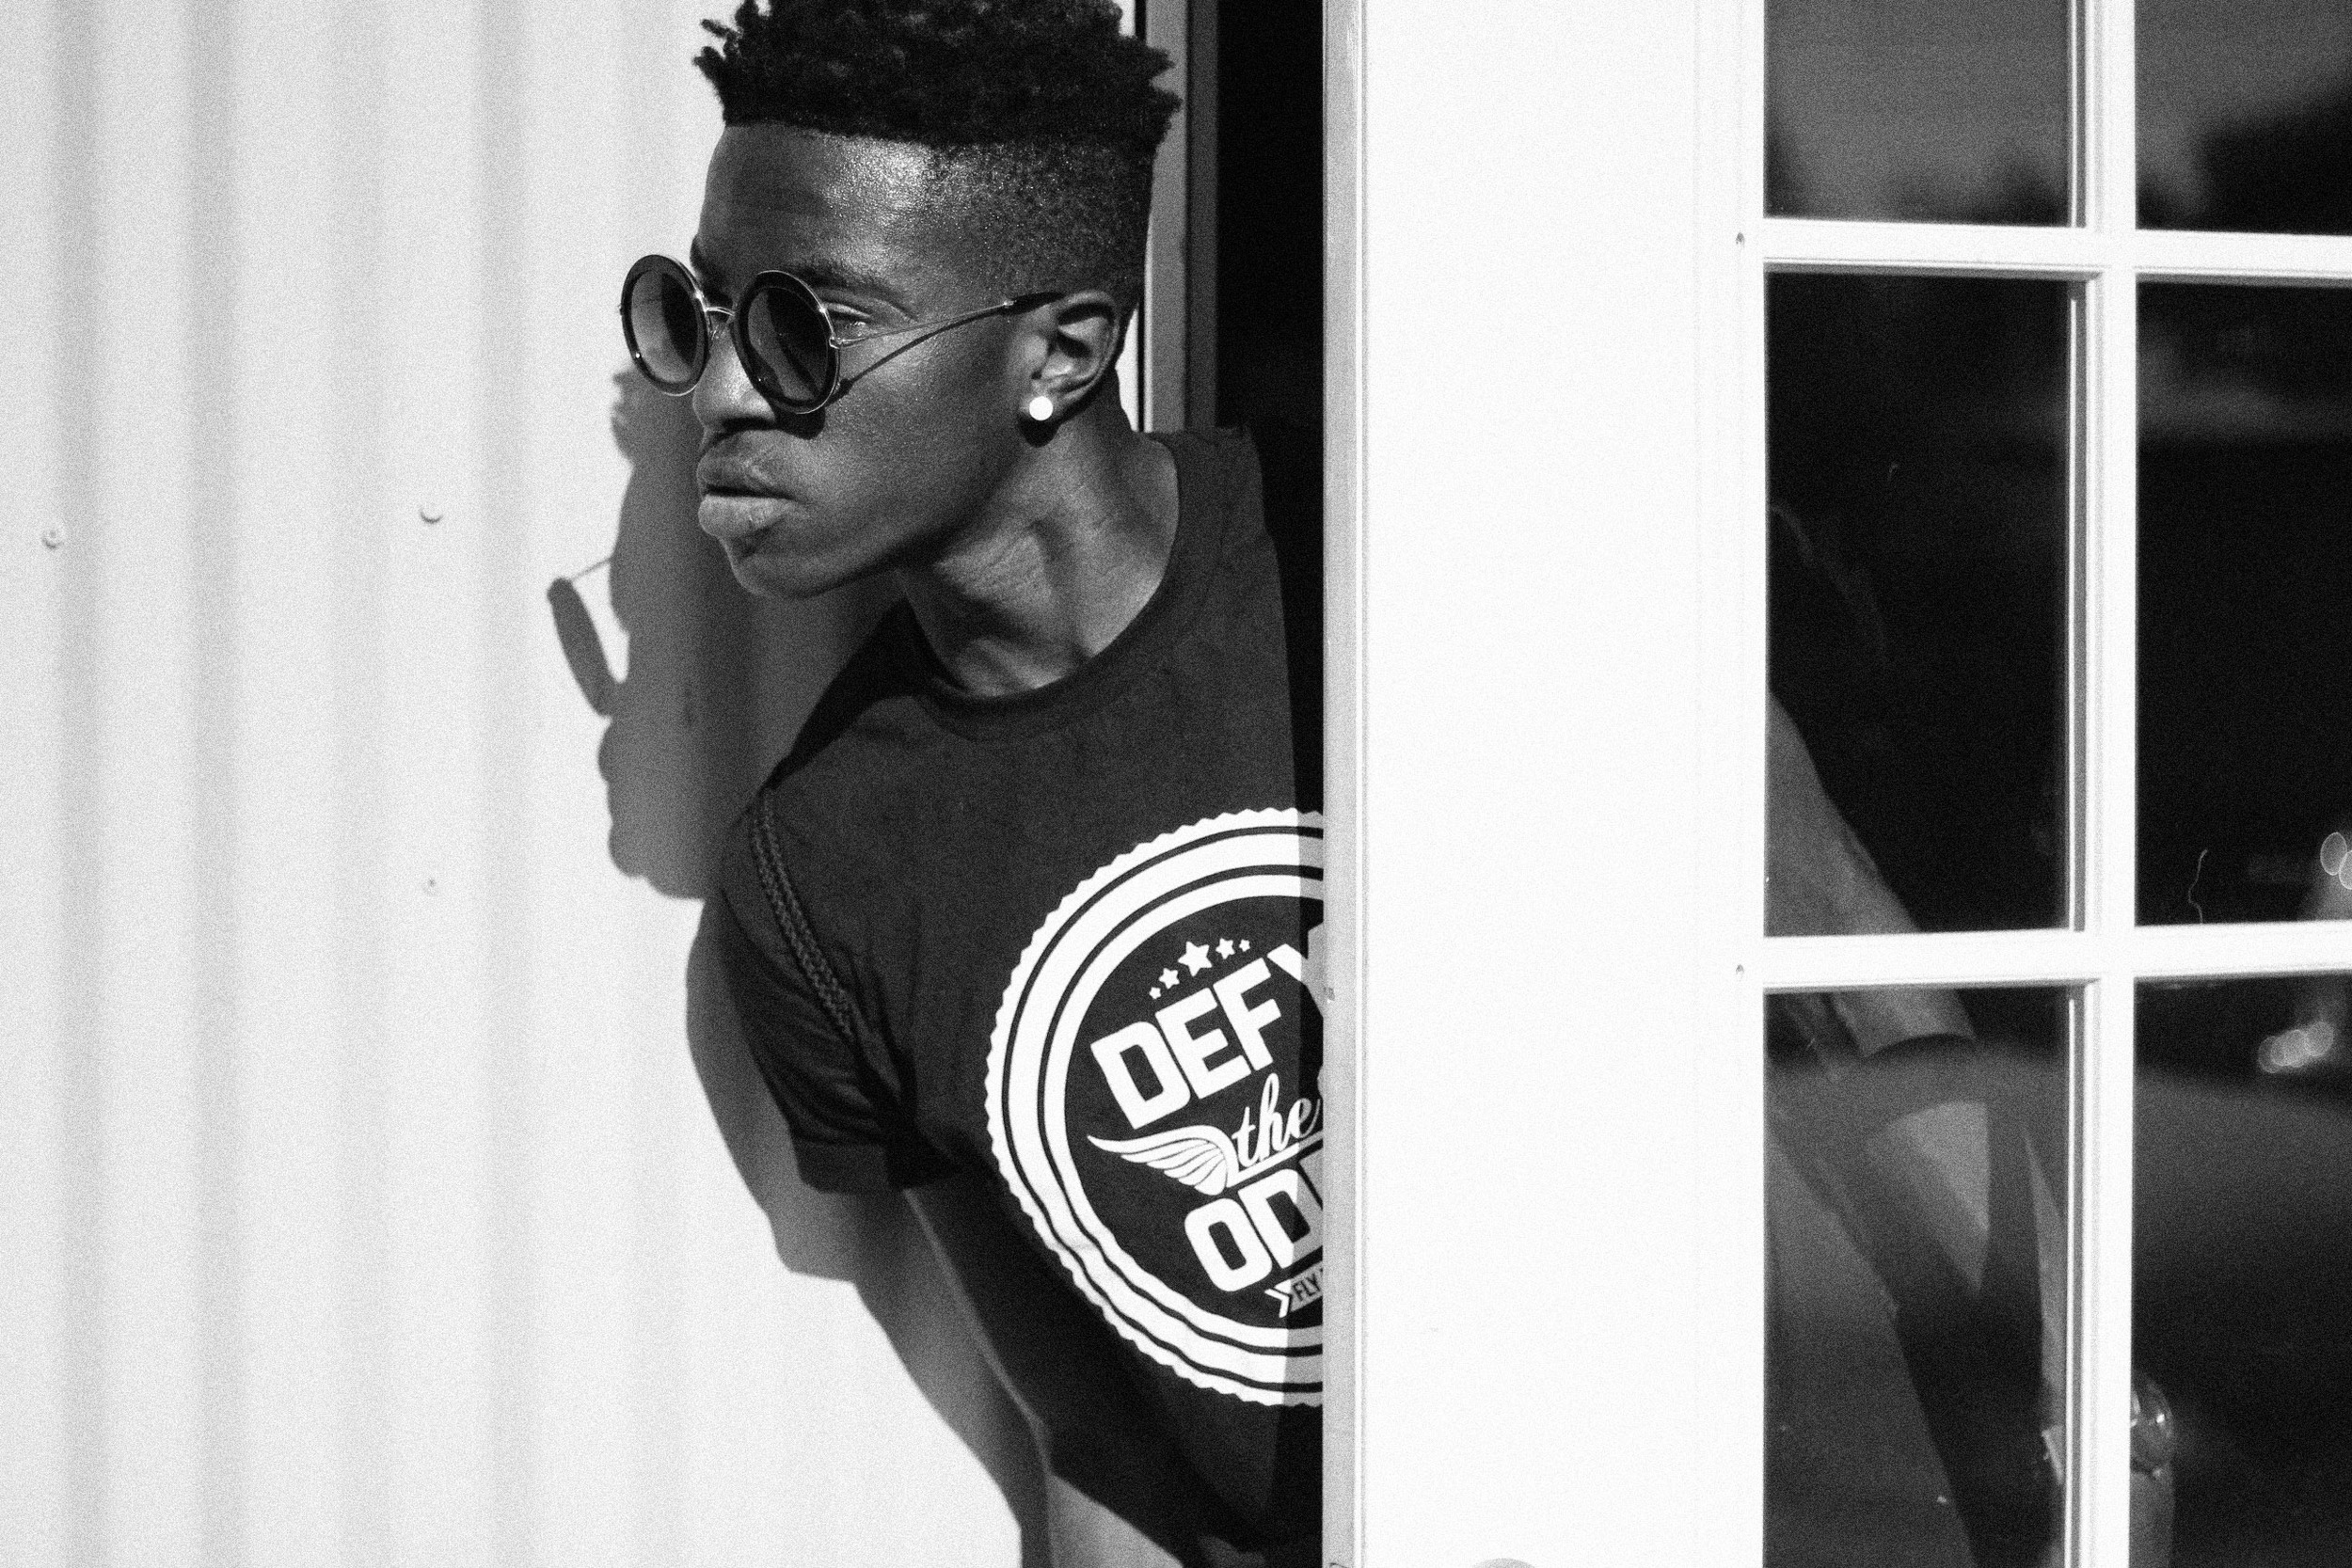 Defy the Odds Lifestyle brand / Fly Elephant Clothing